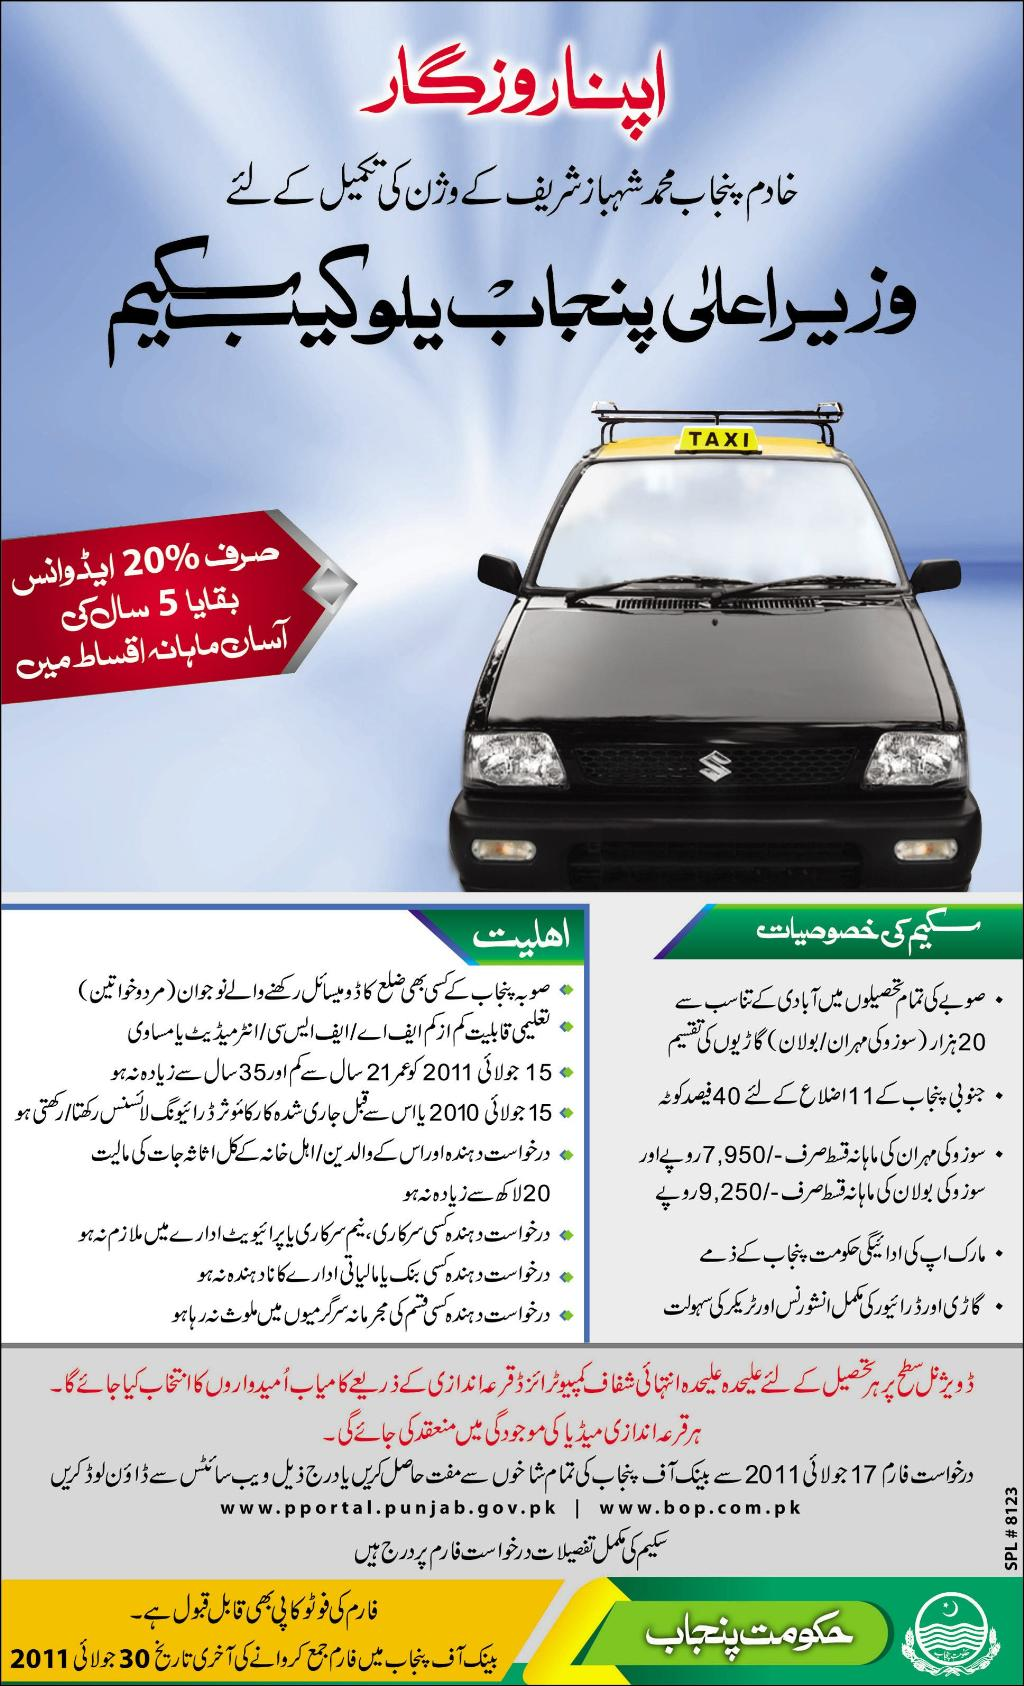 1101287313 1 Yellow Cab Scheme: Sharif Brothers Approves Kali Peli Taxi